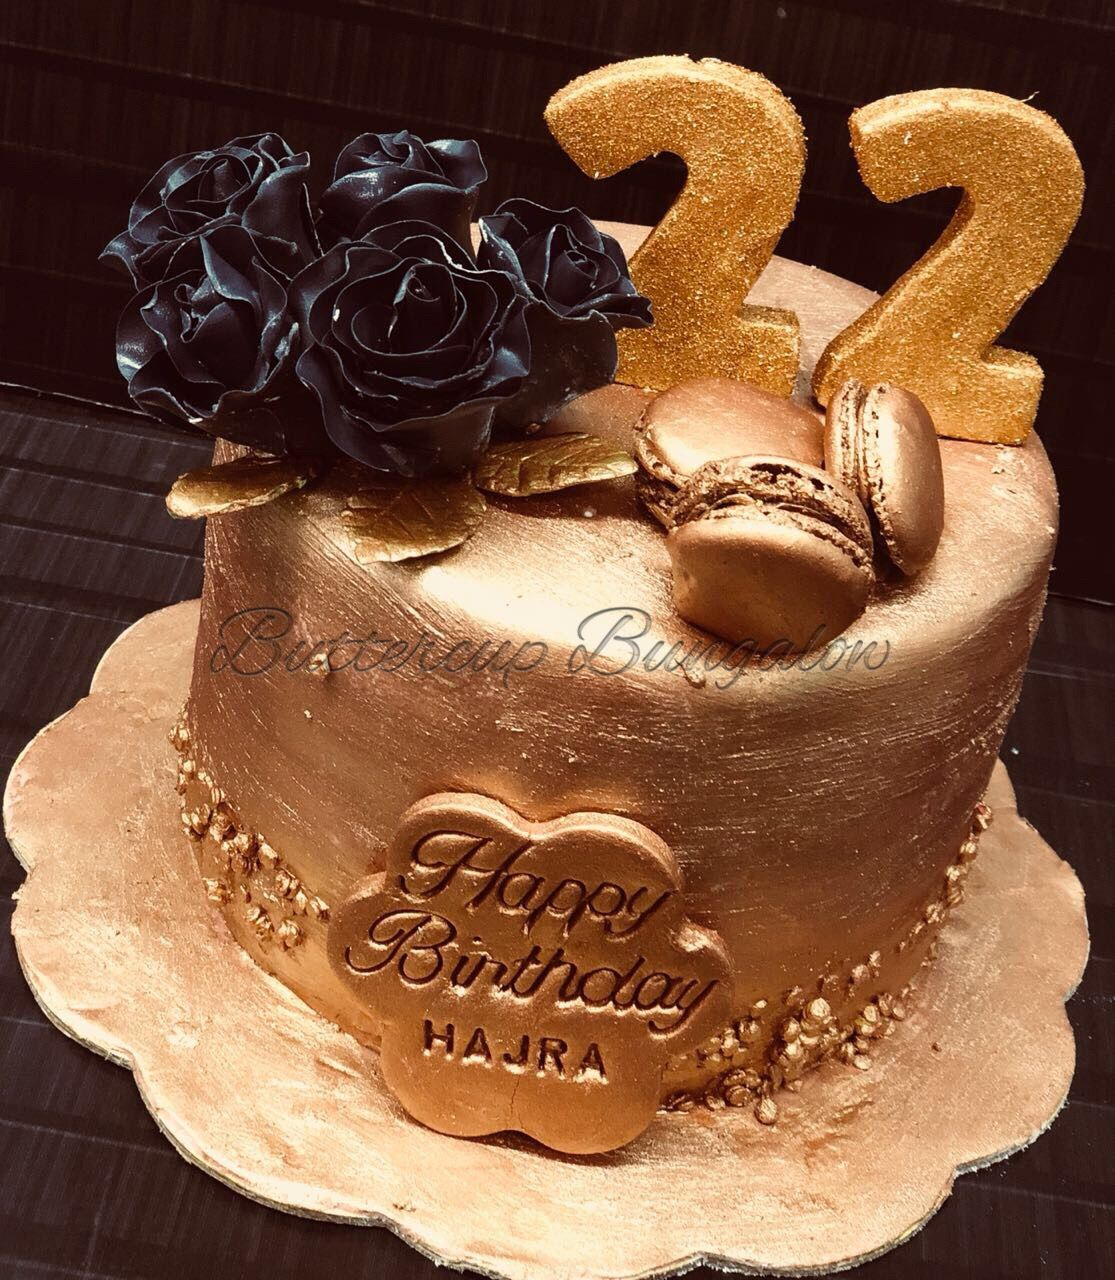 For 22 Year Old Hajra A Shimmery Delight With Some Chocolate